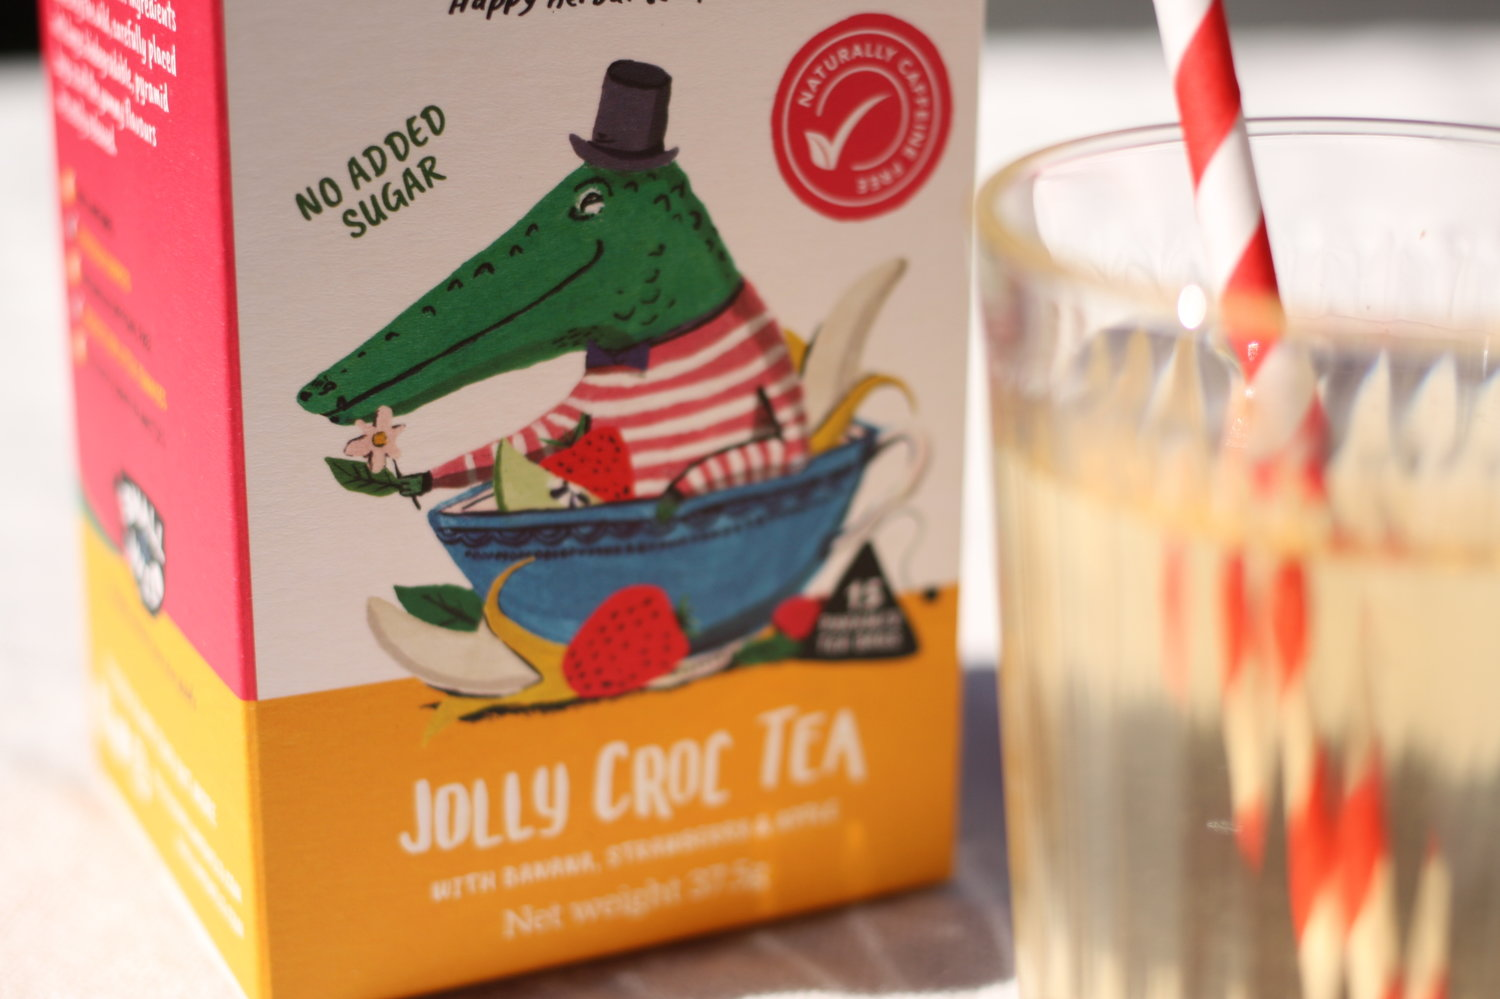 Jolly Croc fruit iced tea with banana and strawberry in glass with straw